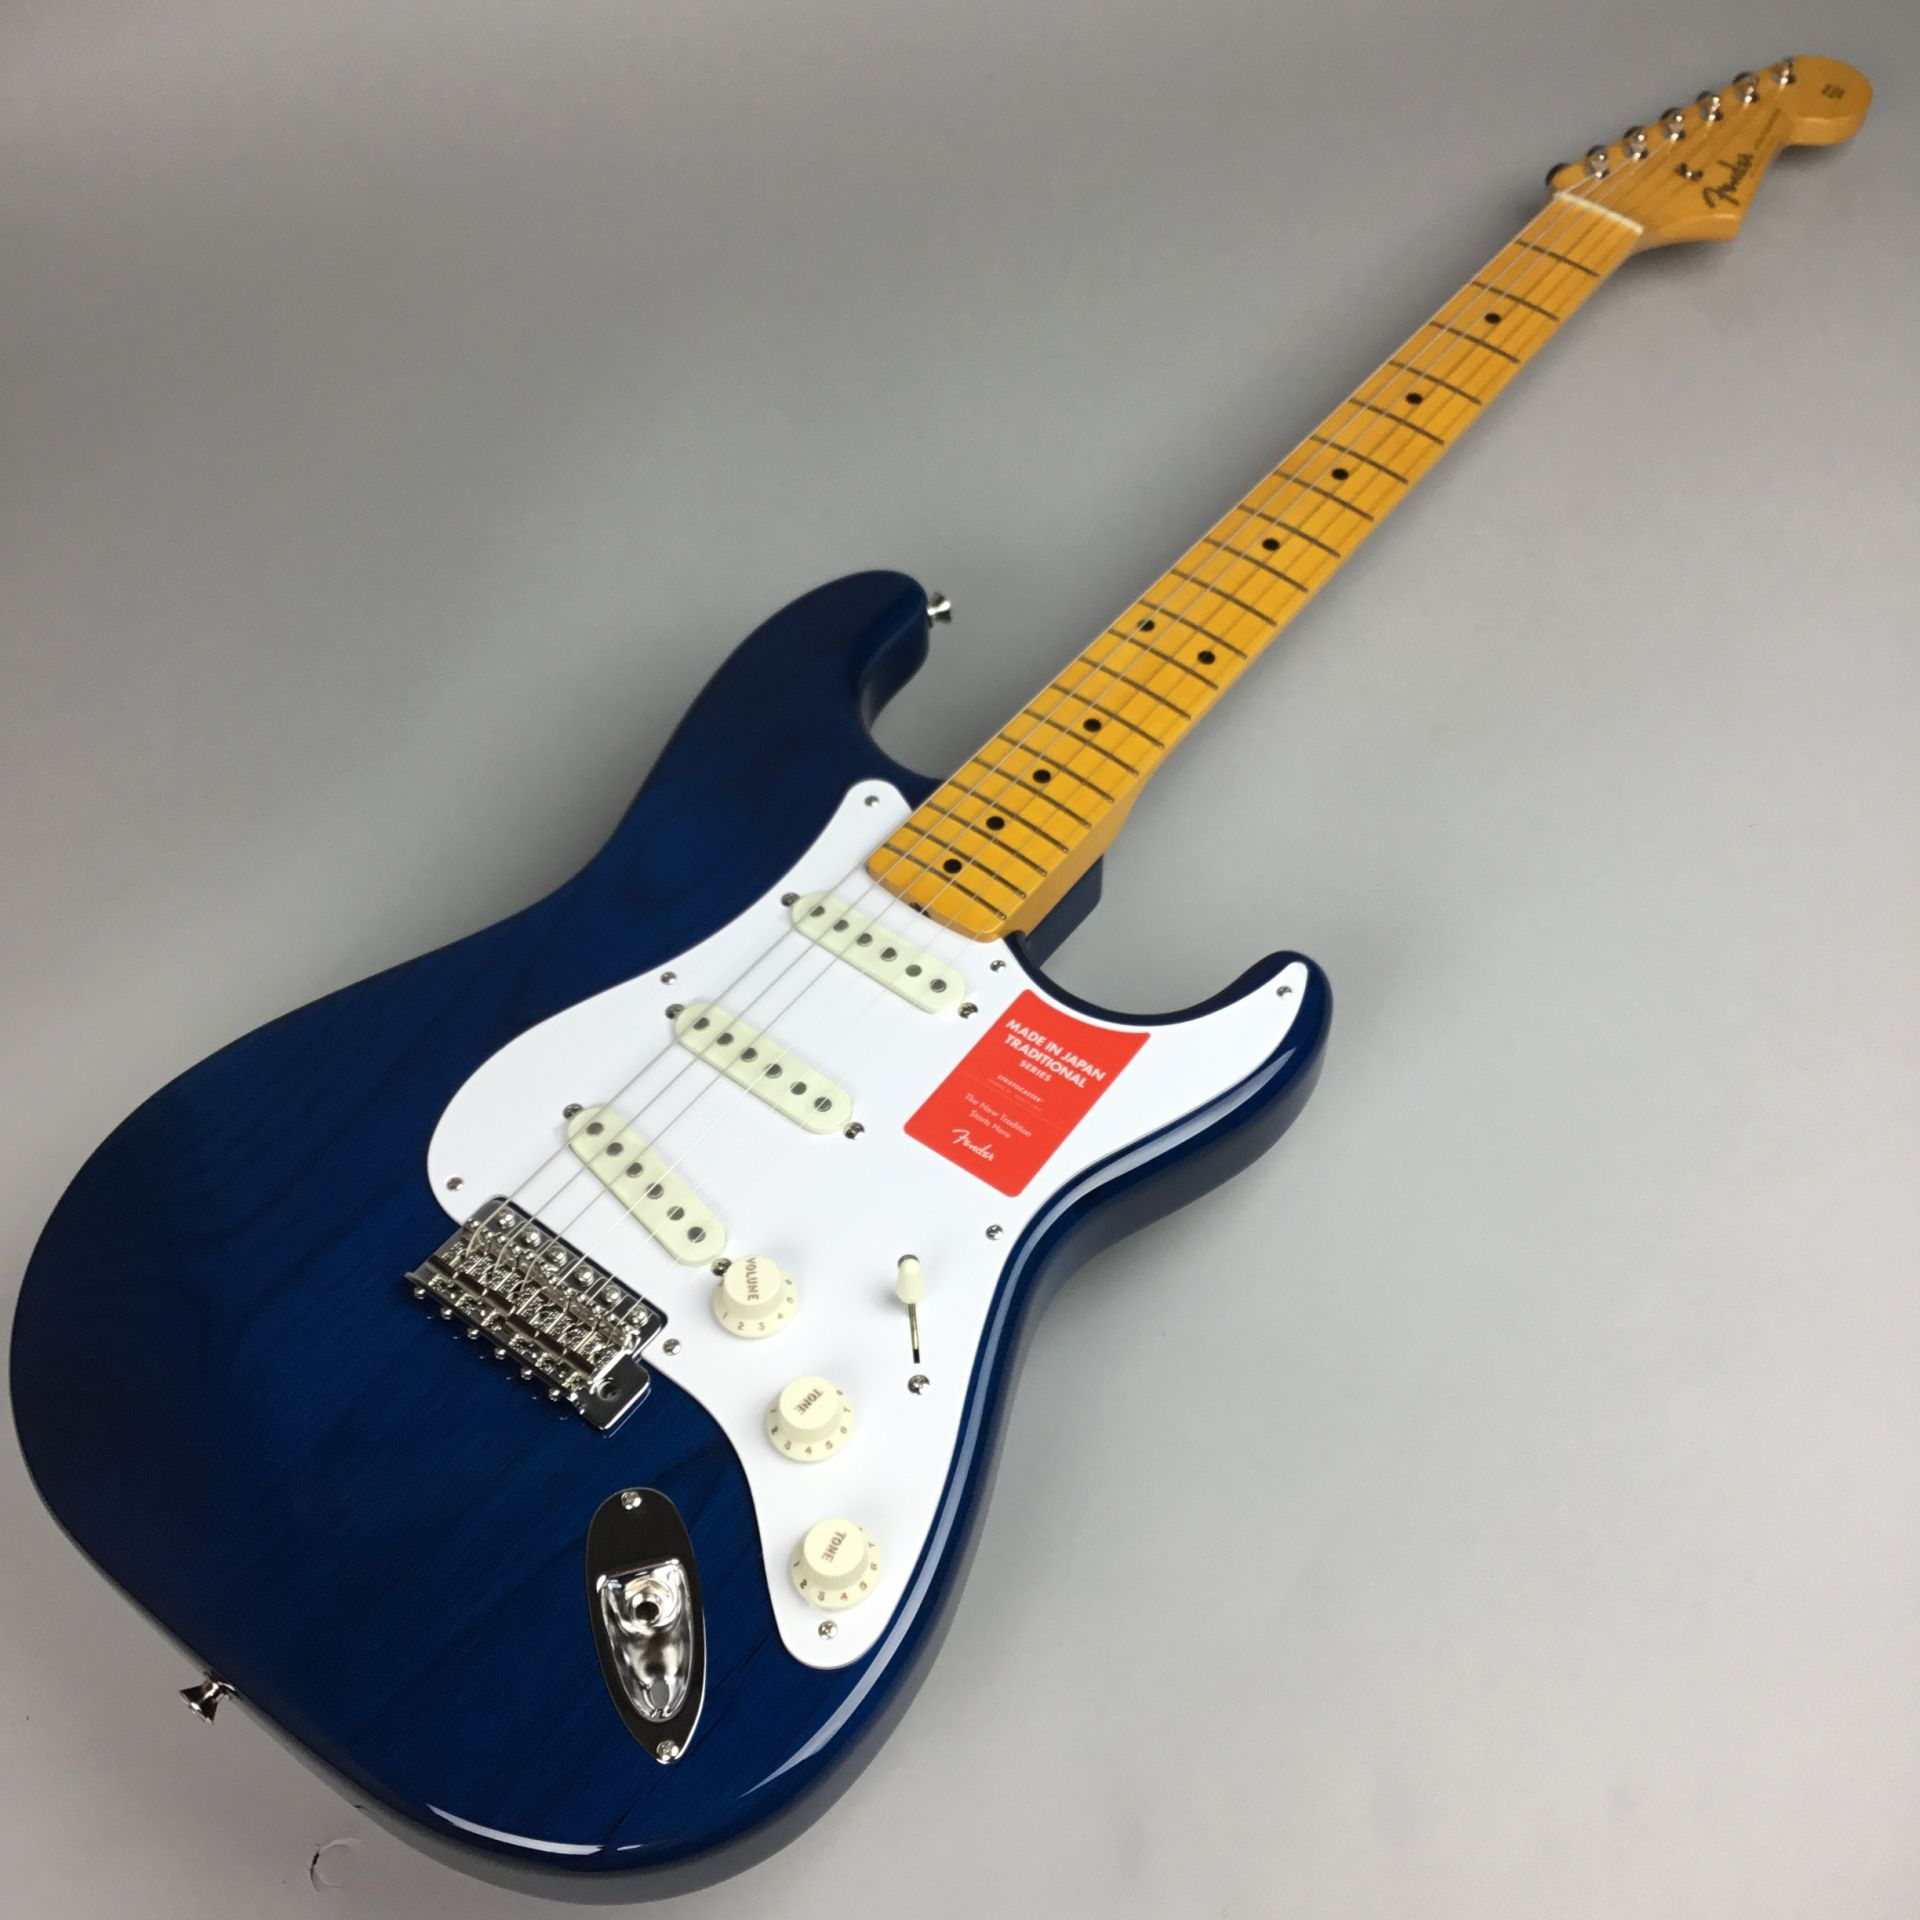 MADE IN JAPAN TRADITIONAL 58 STRATOCASTER®のボディトップ-アップ画像